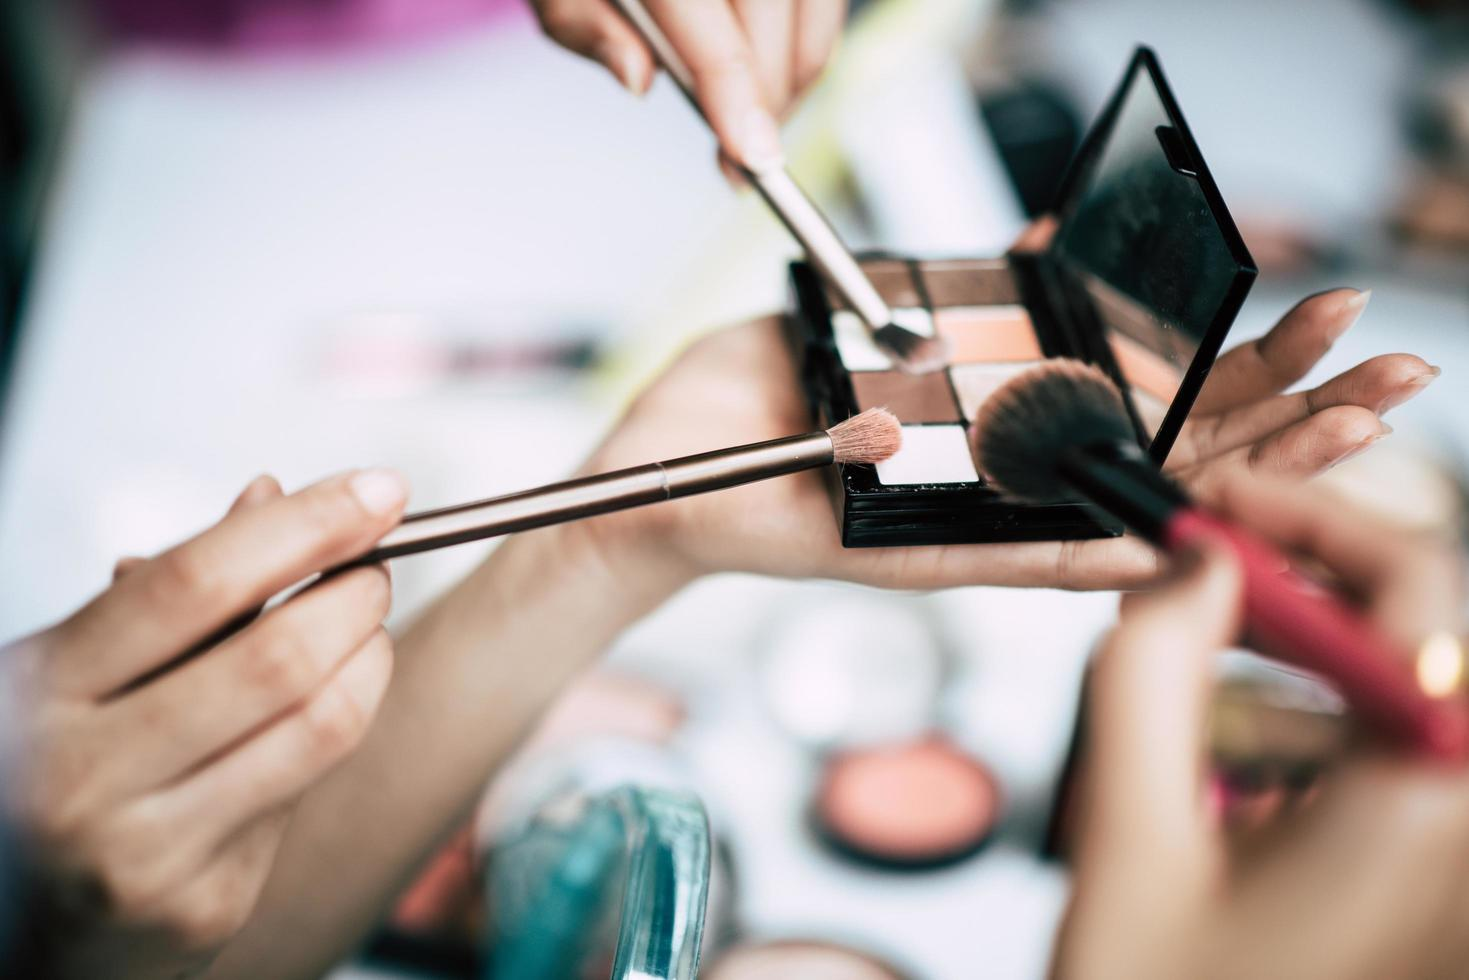 Women doing makeup with brushes and cosmetic powder photo